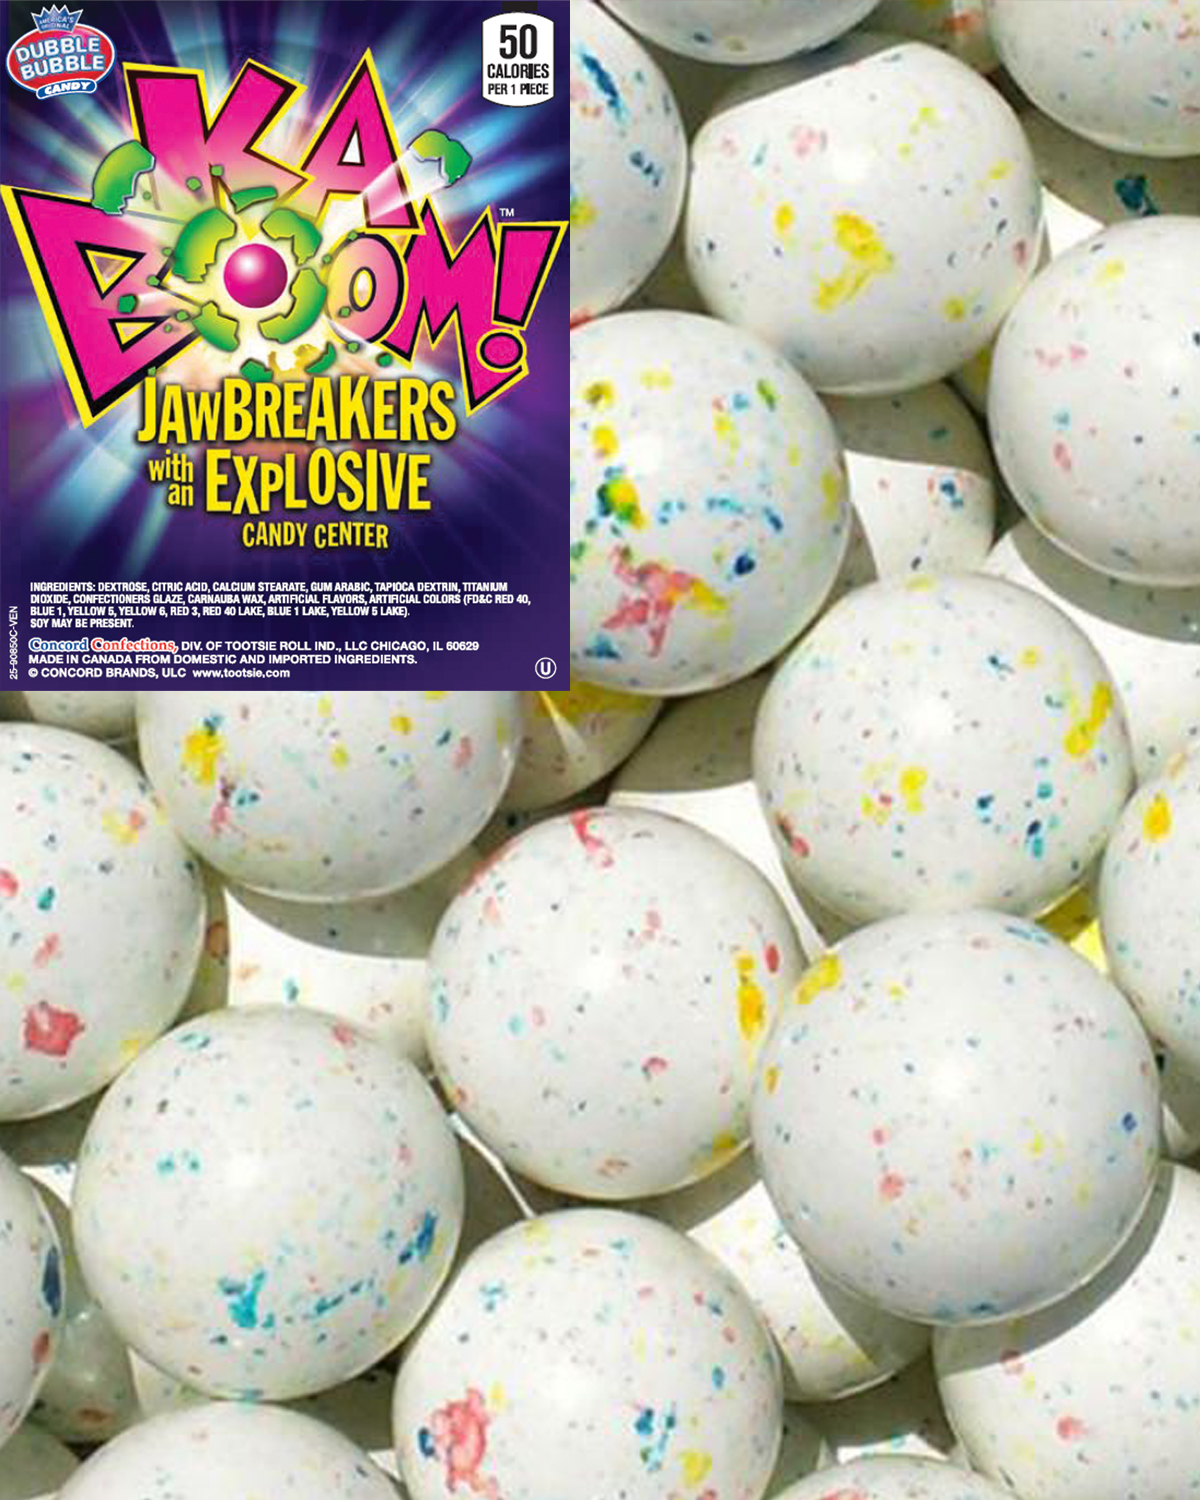 KABOOM JAW BREAKERS